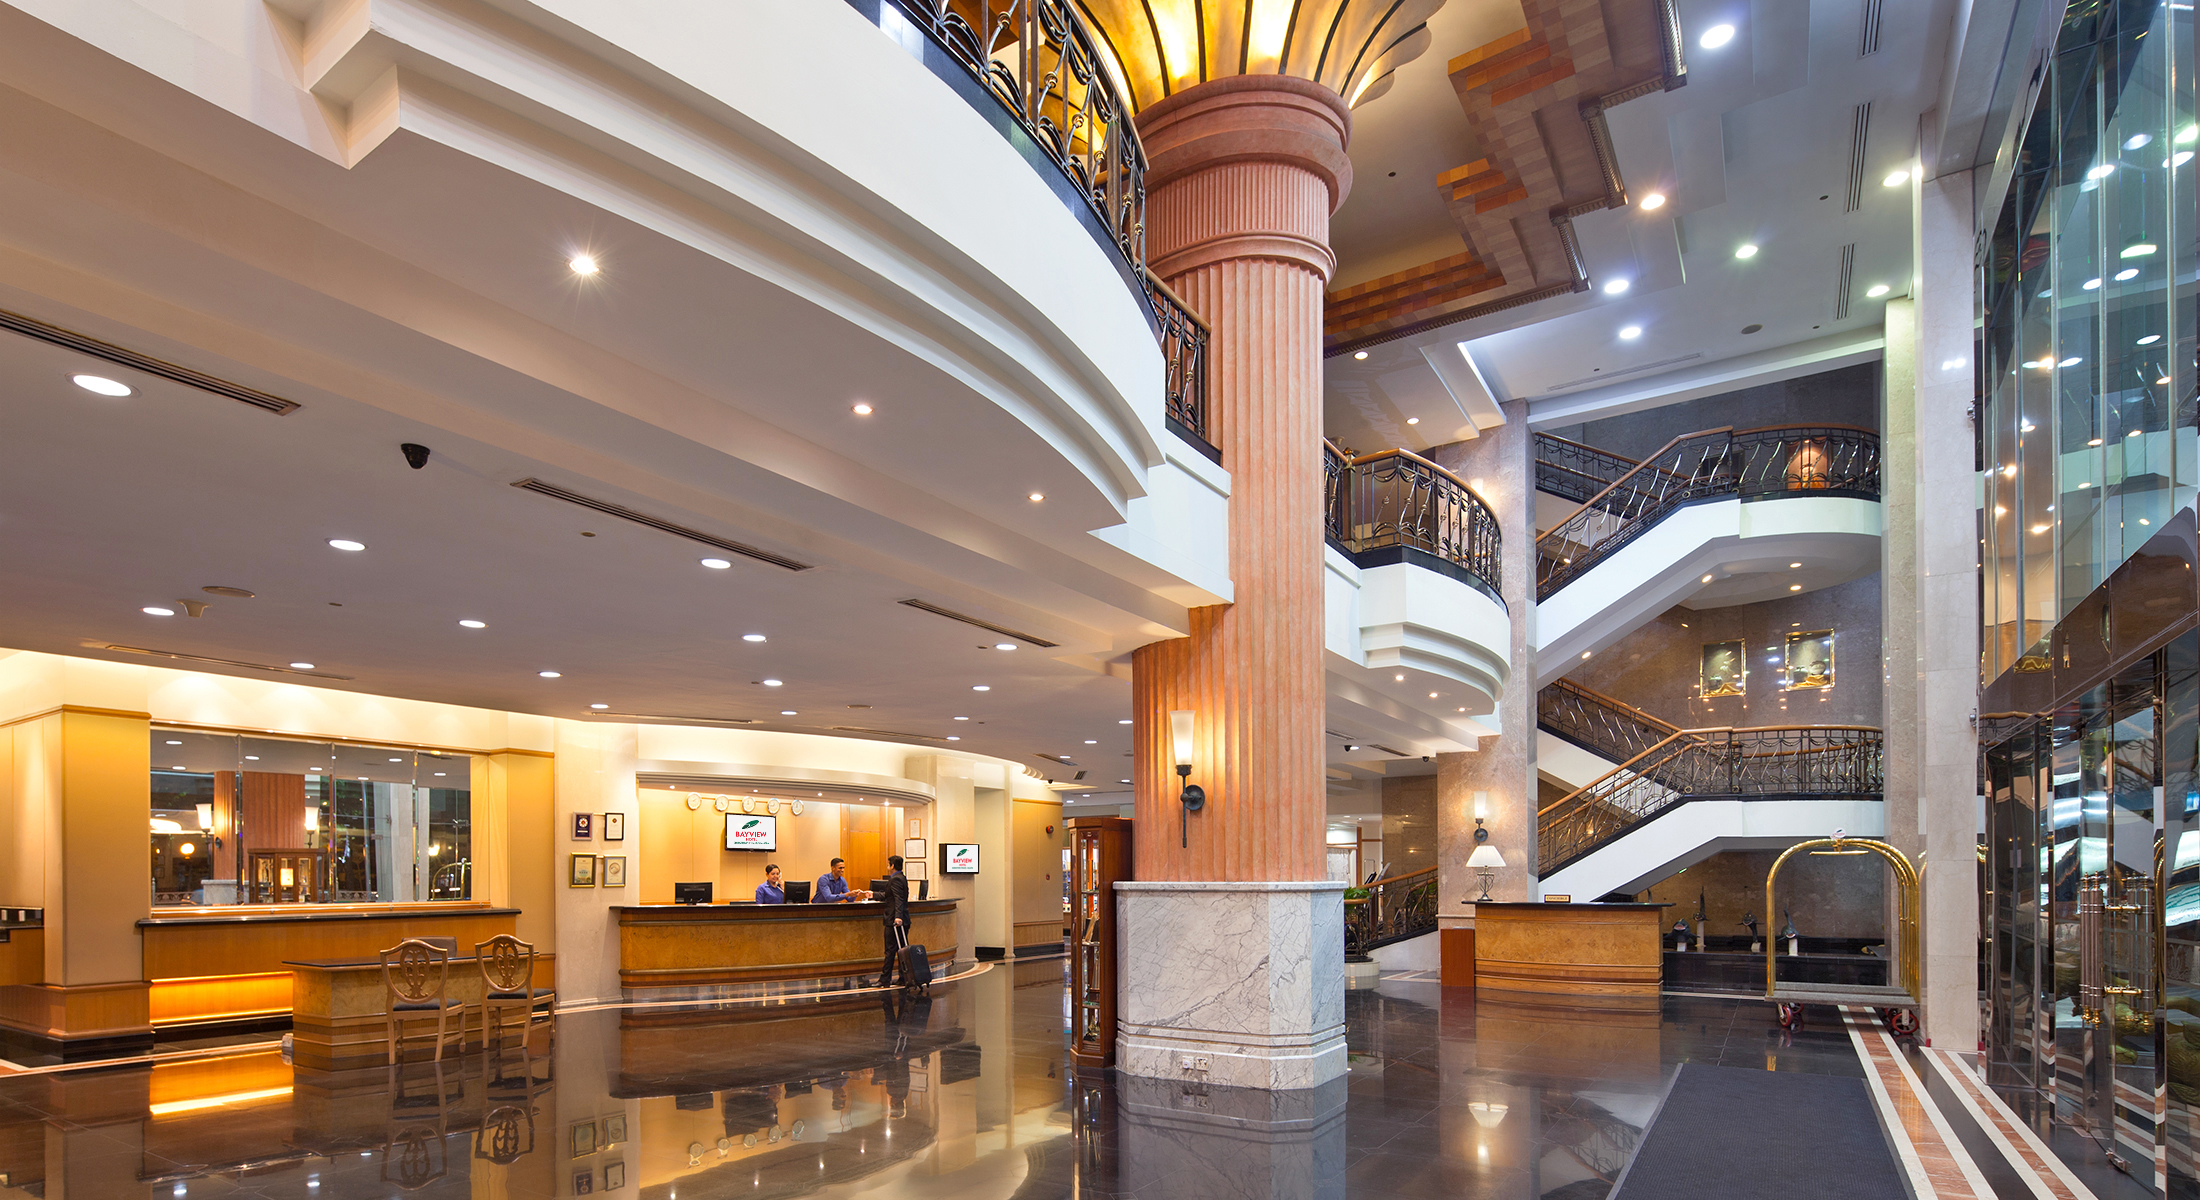 Hotel Entrance Foyer : Our hotel photo gallery penang bayview georgetown